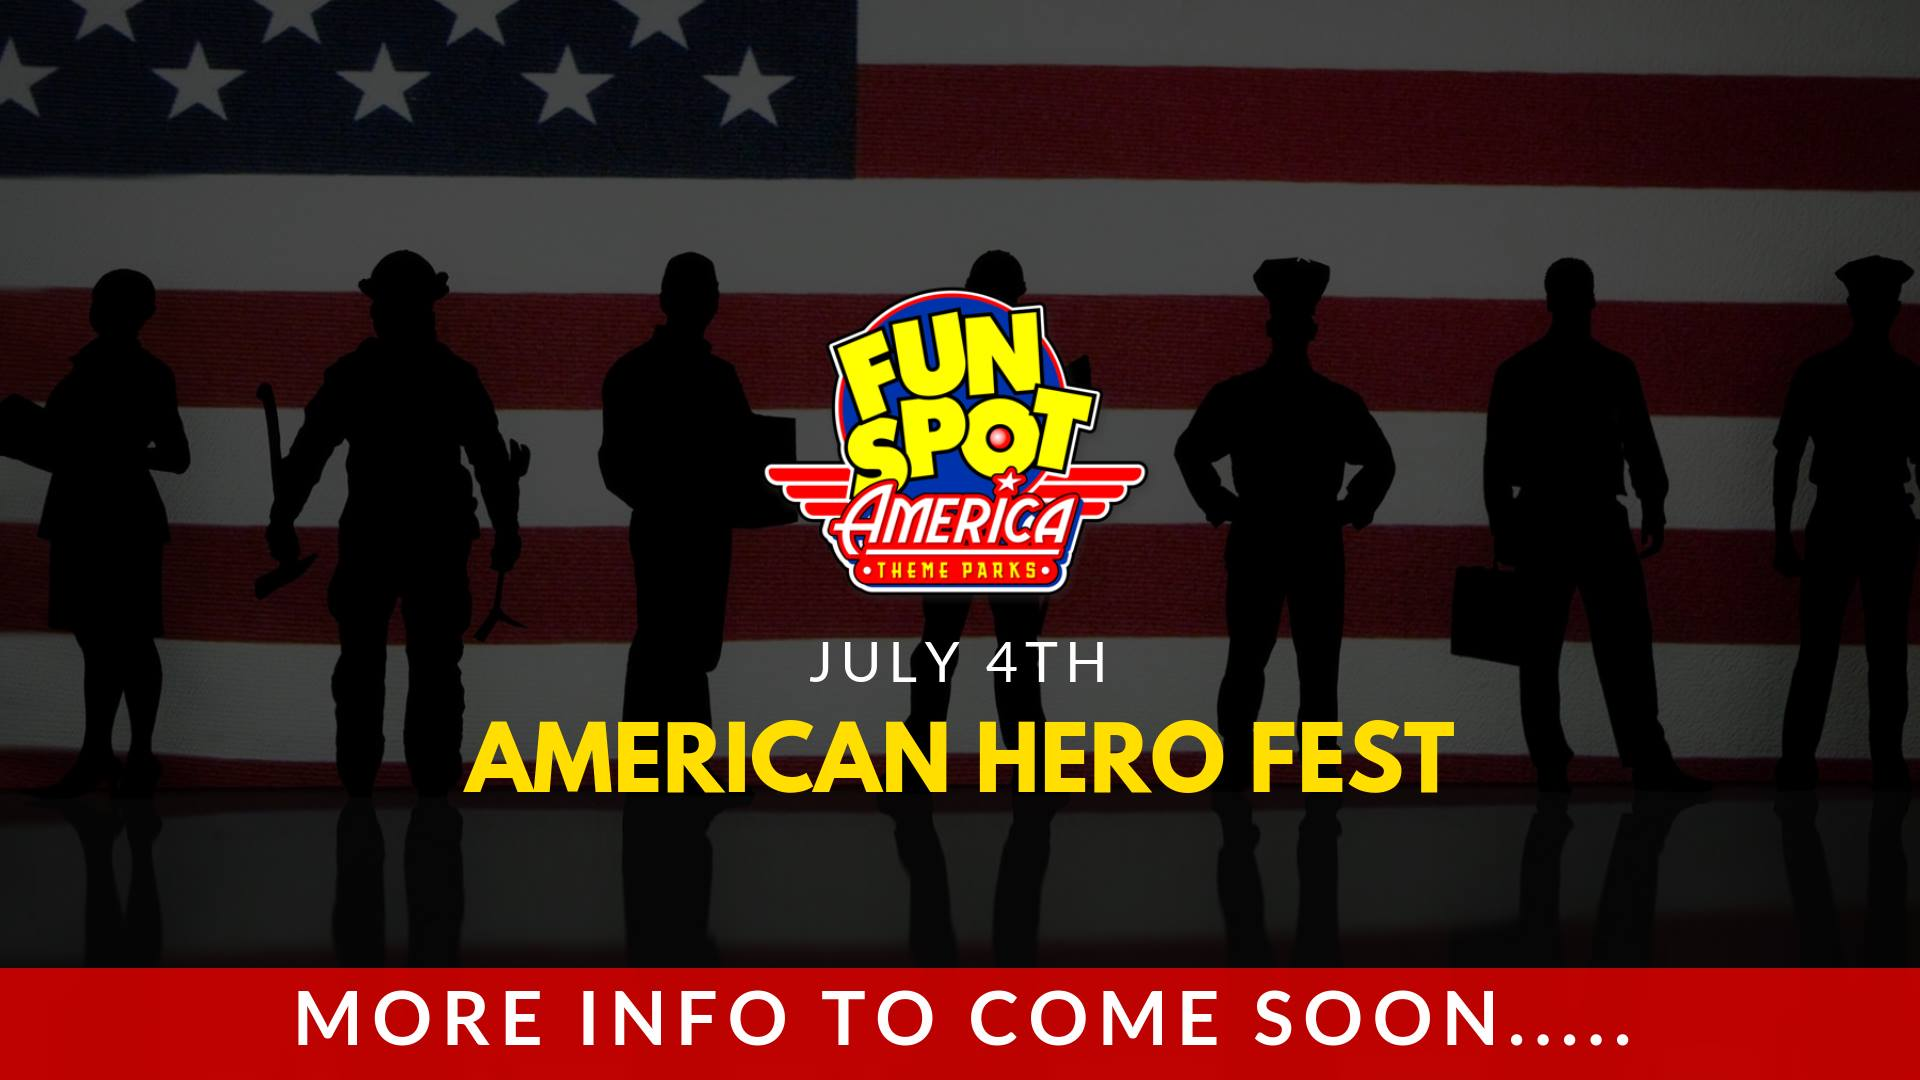 herofestjuly4th